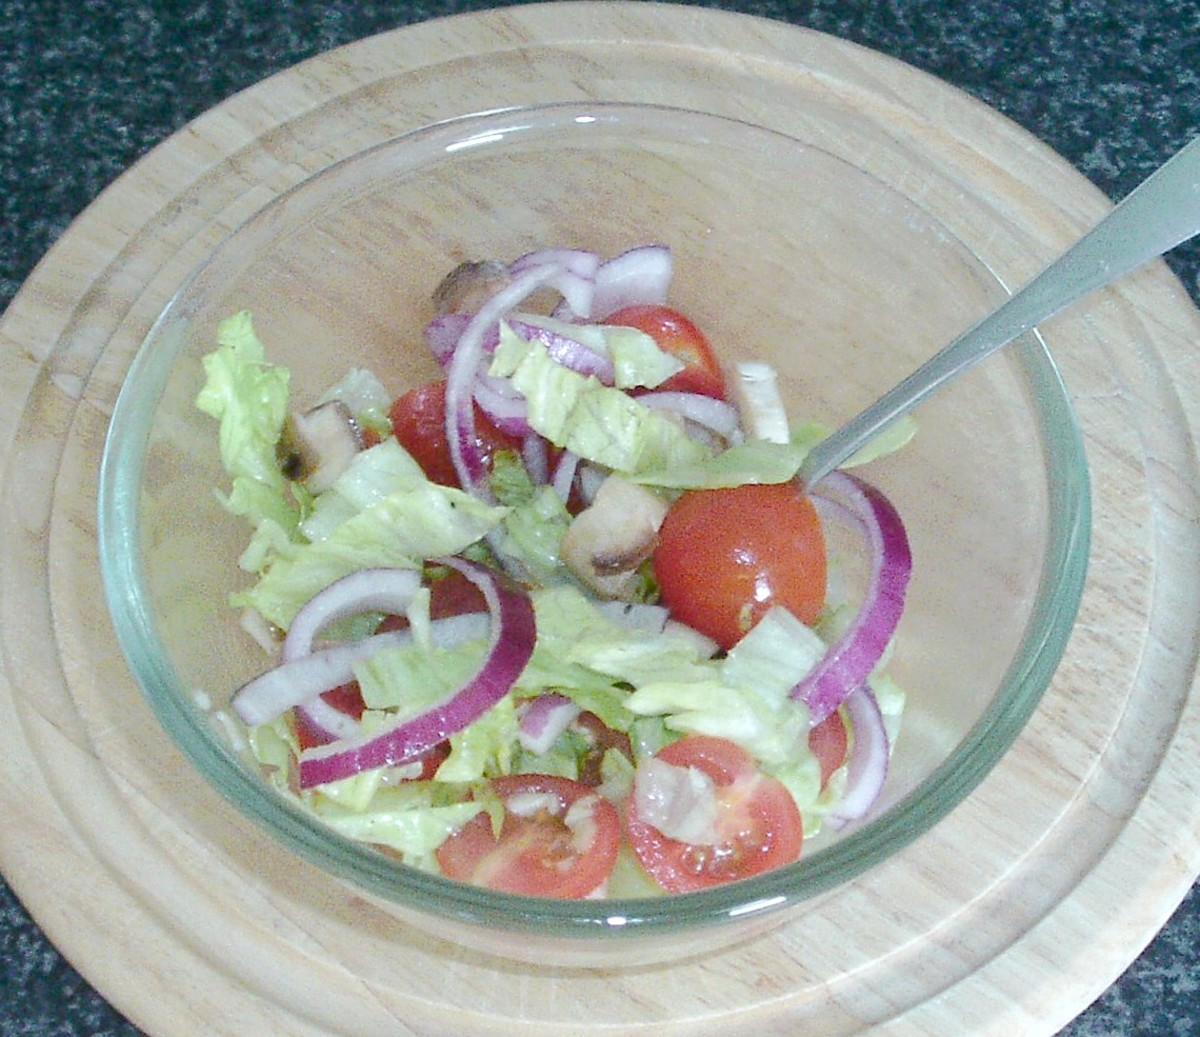 Salad ingredients are stirred through seasoned oil